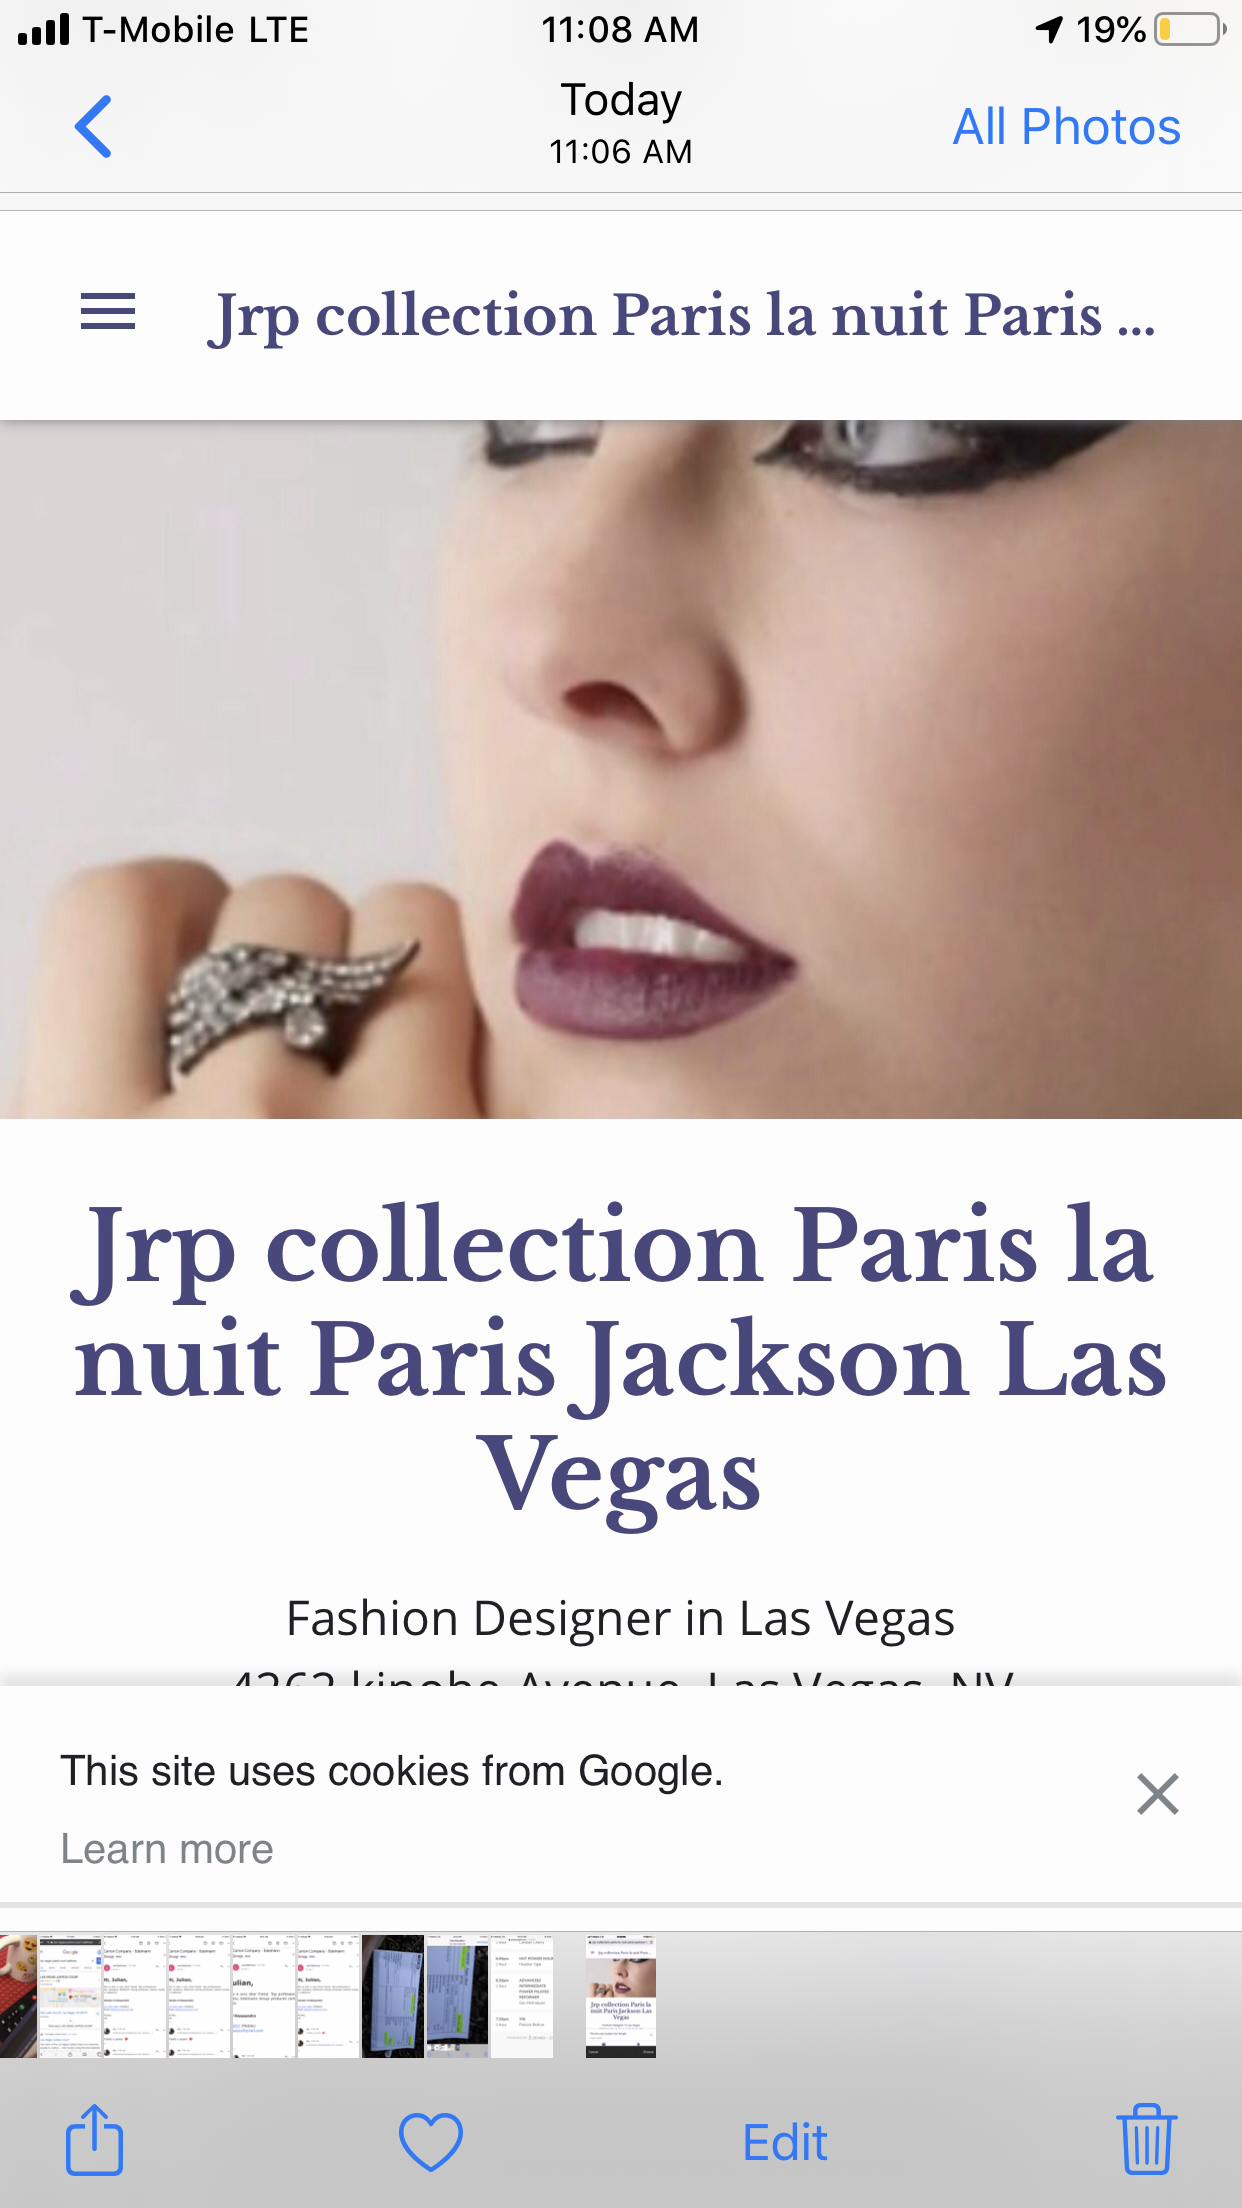 Jrp collection Paris